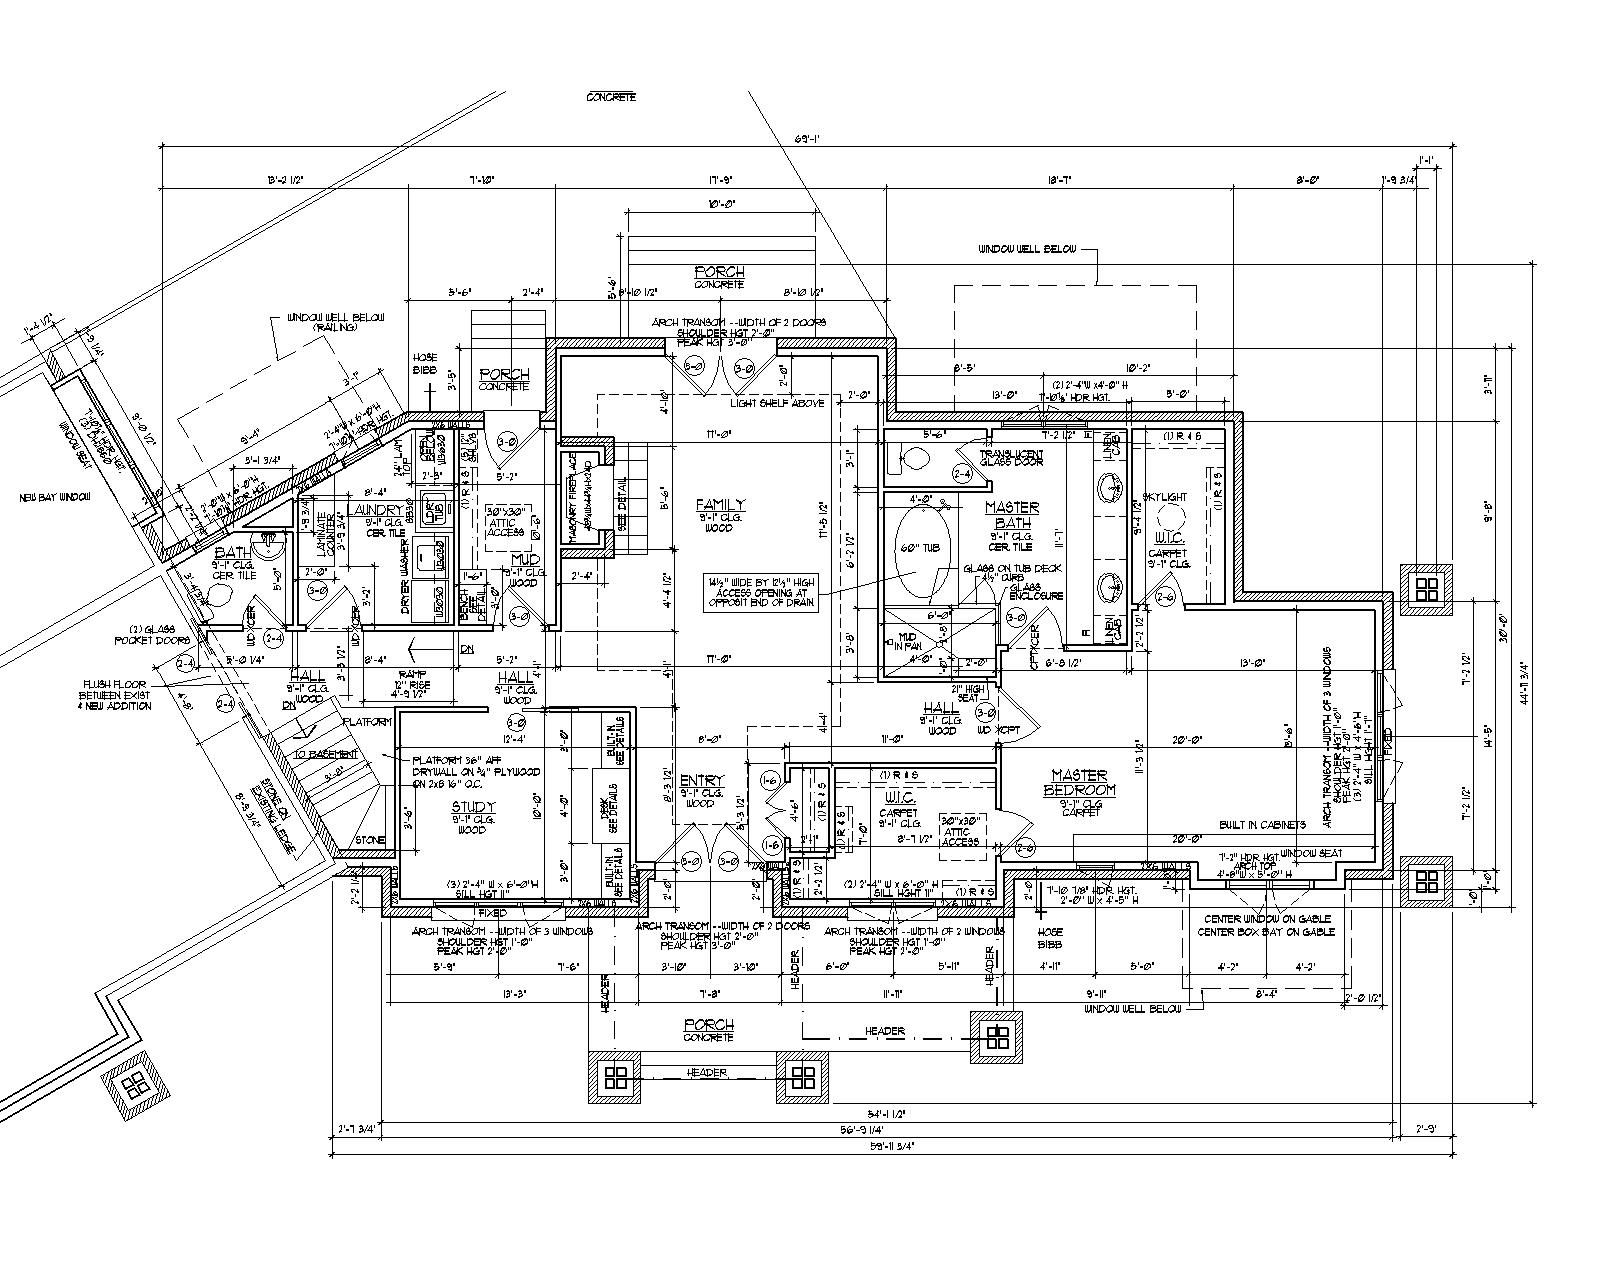 2d autocad house plans residential building drawings cad for Building plans and designs